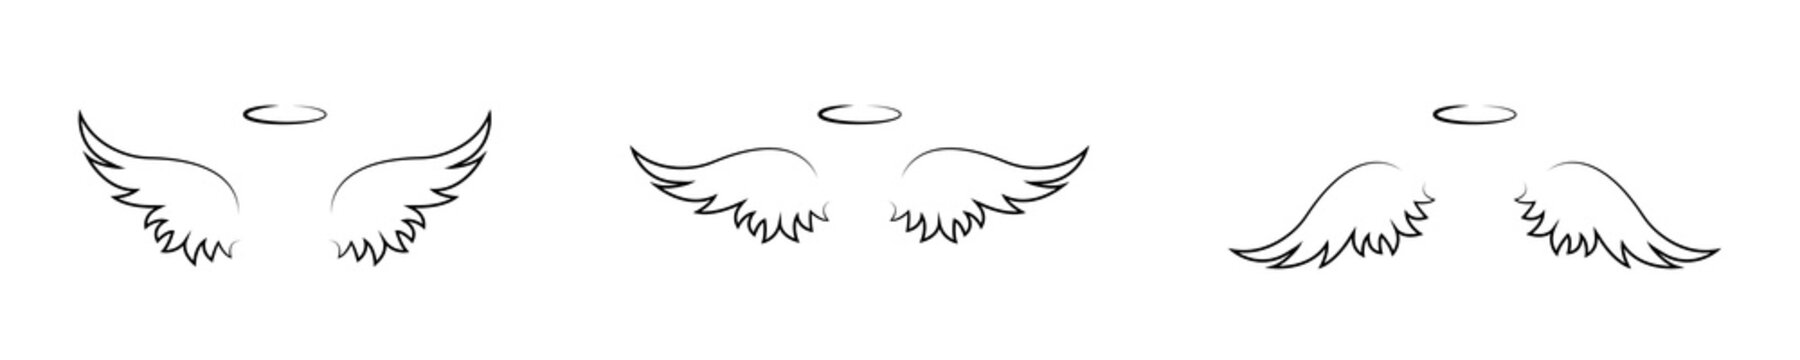 One line drawing wings set isolated on white background. Angel wings silhouette collection. Religious sign symbol icon set. Vector graphic.